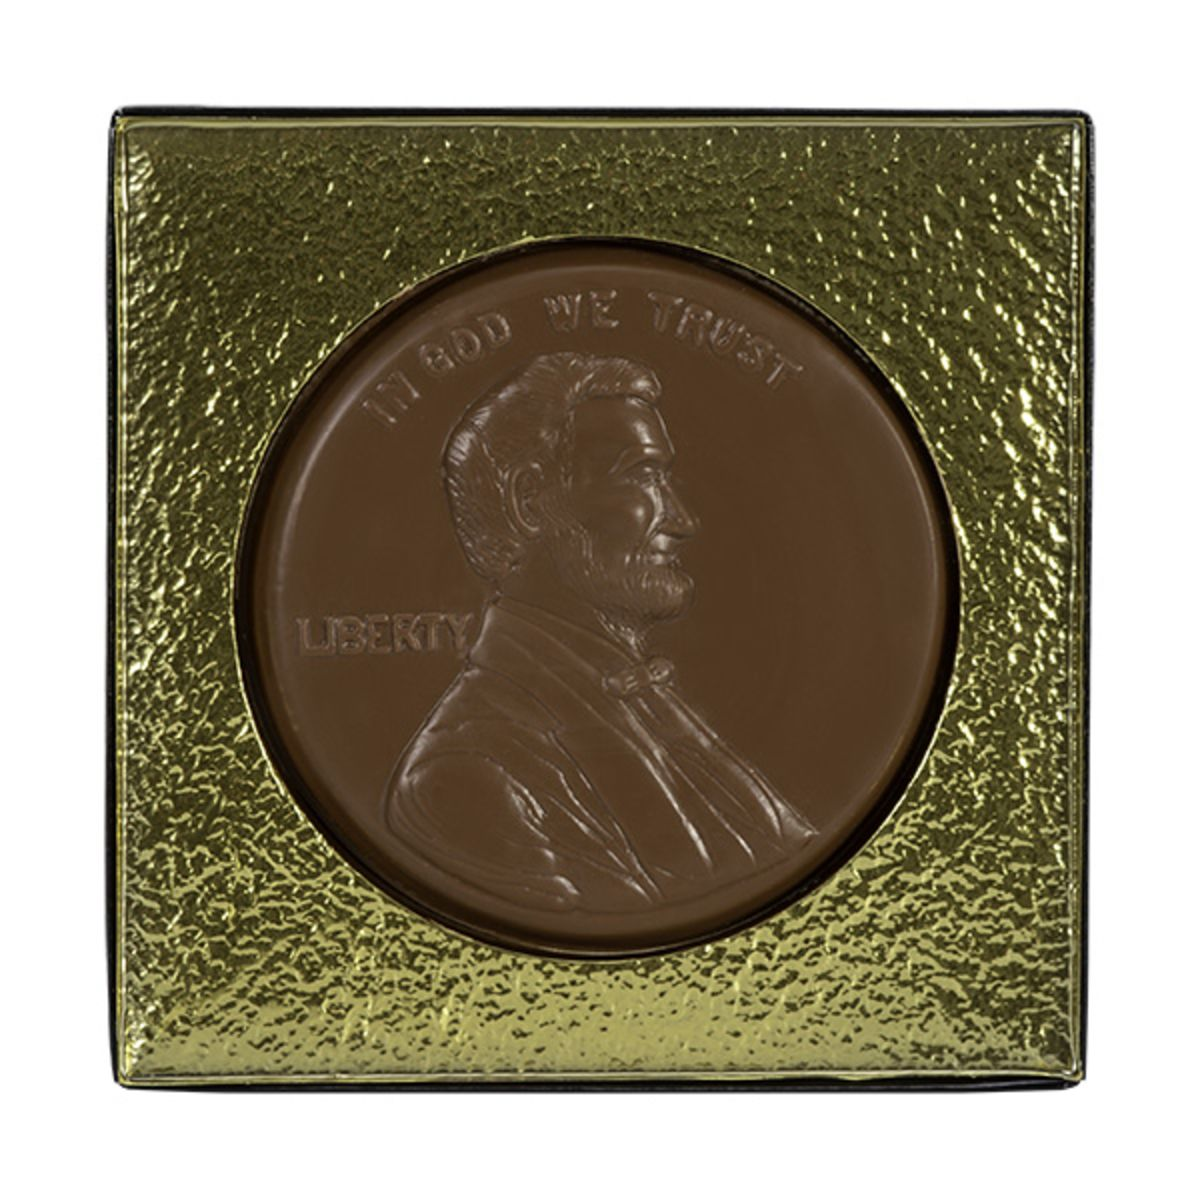 Giant-sized Milk Chocolate Lincoln Penny